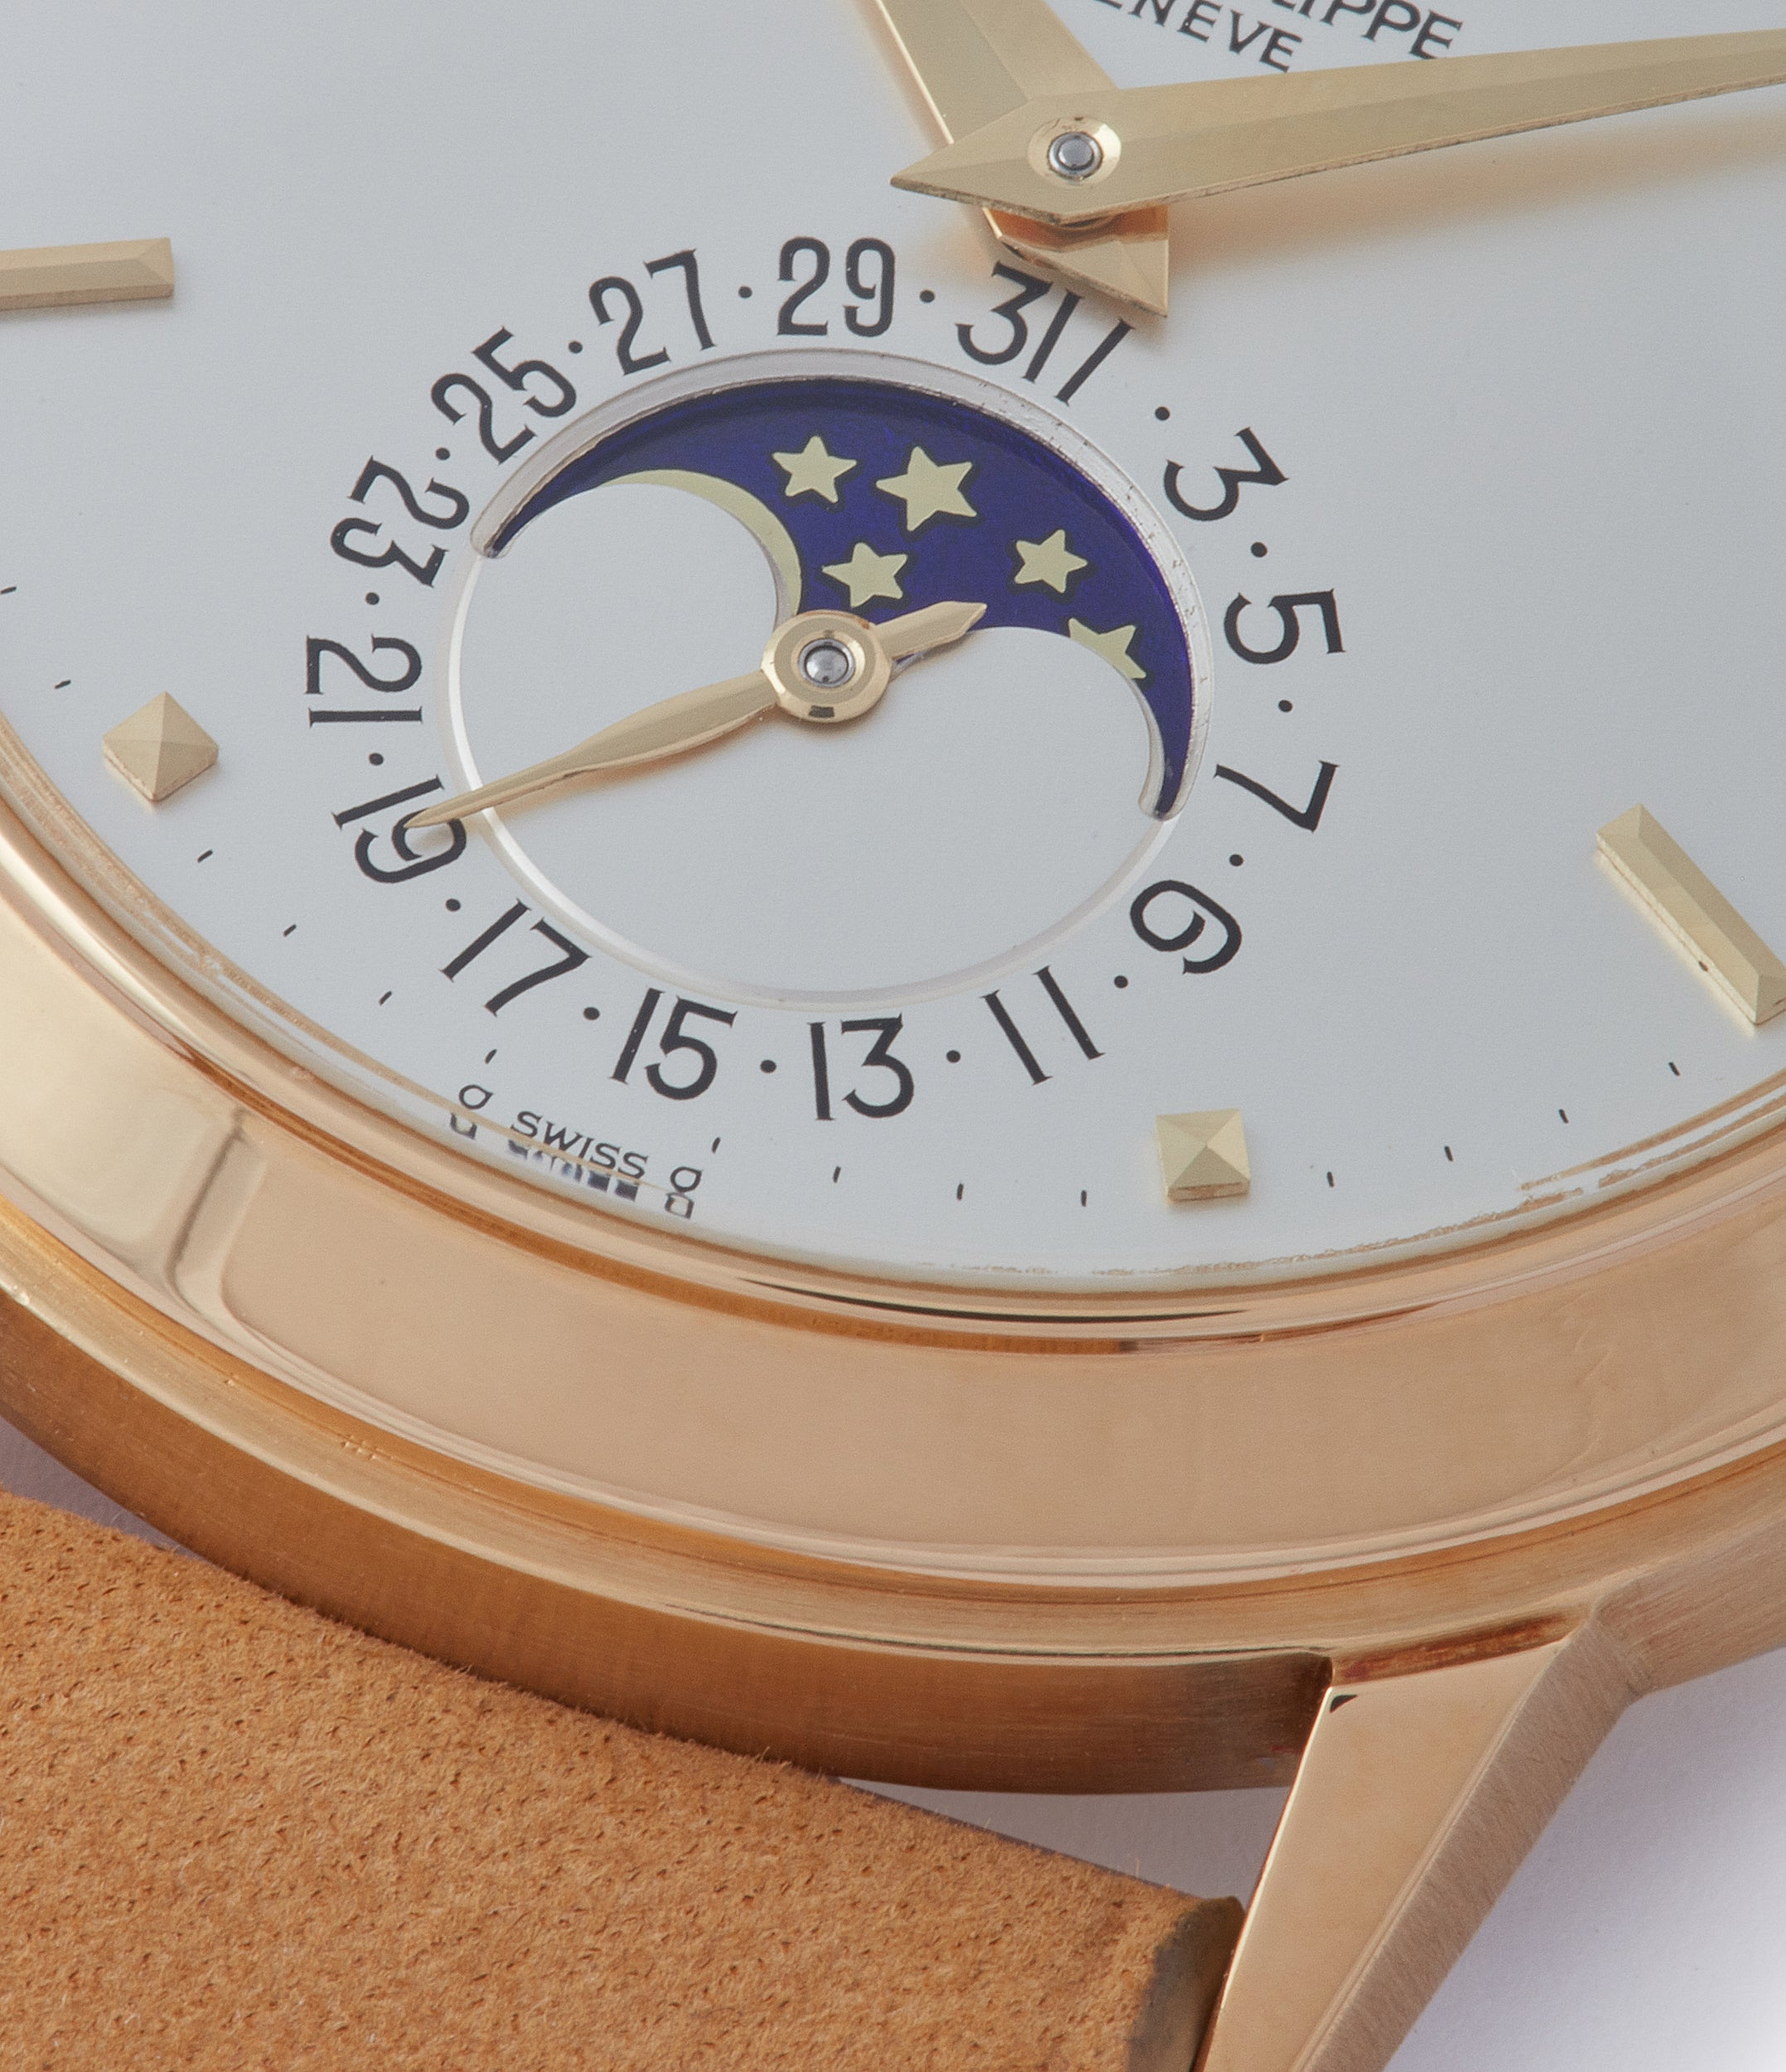 moonphase Patek Philippe 3448 Perpetual Calendar Moonphase yellow gold dress watch for sale online at A Collected Man London UK specialist of rare watches